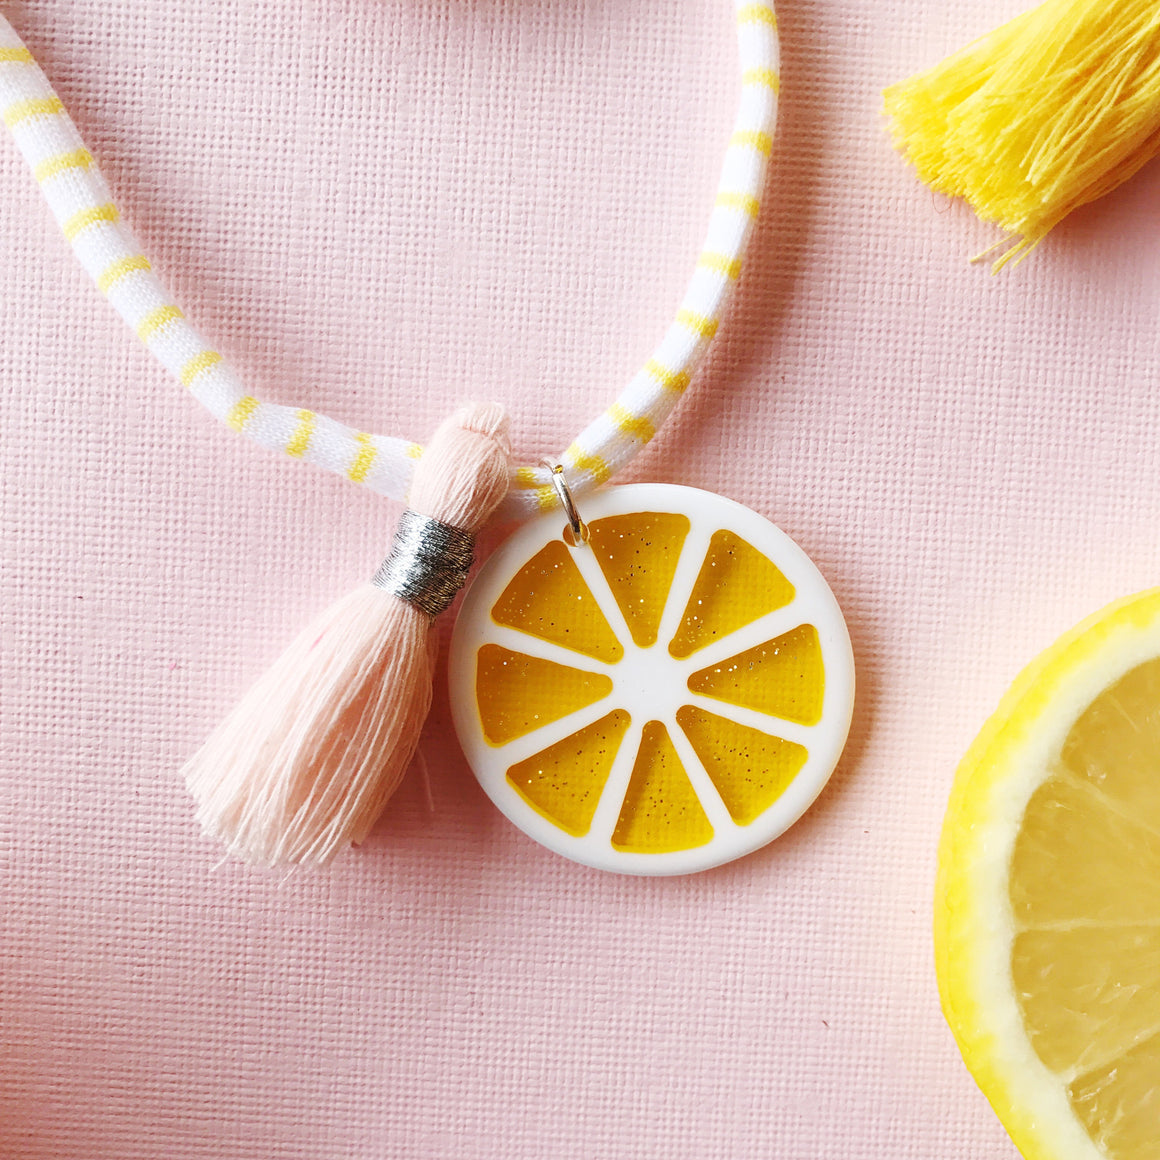 Lemonade necklace